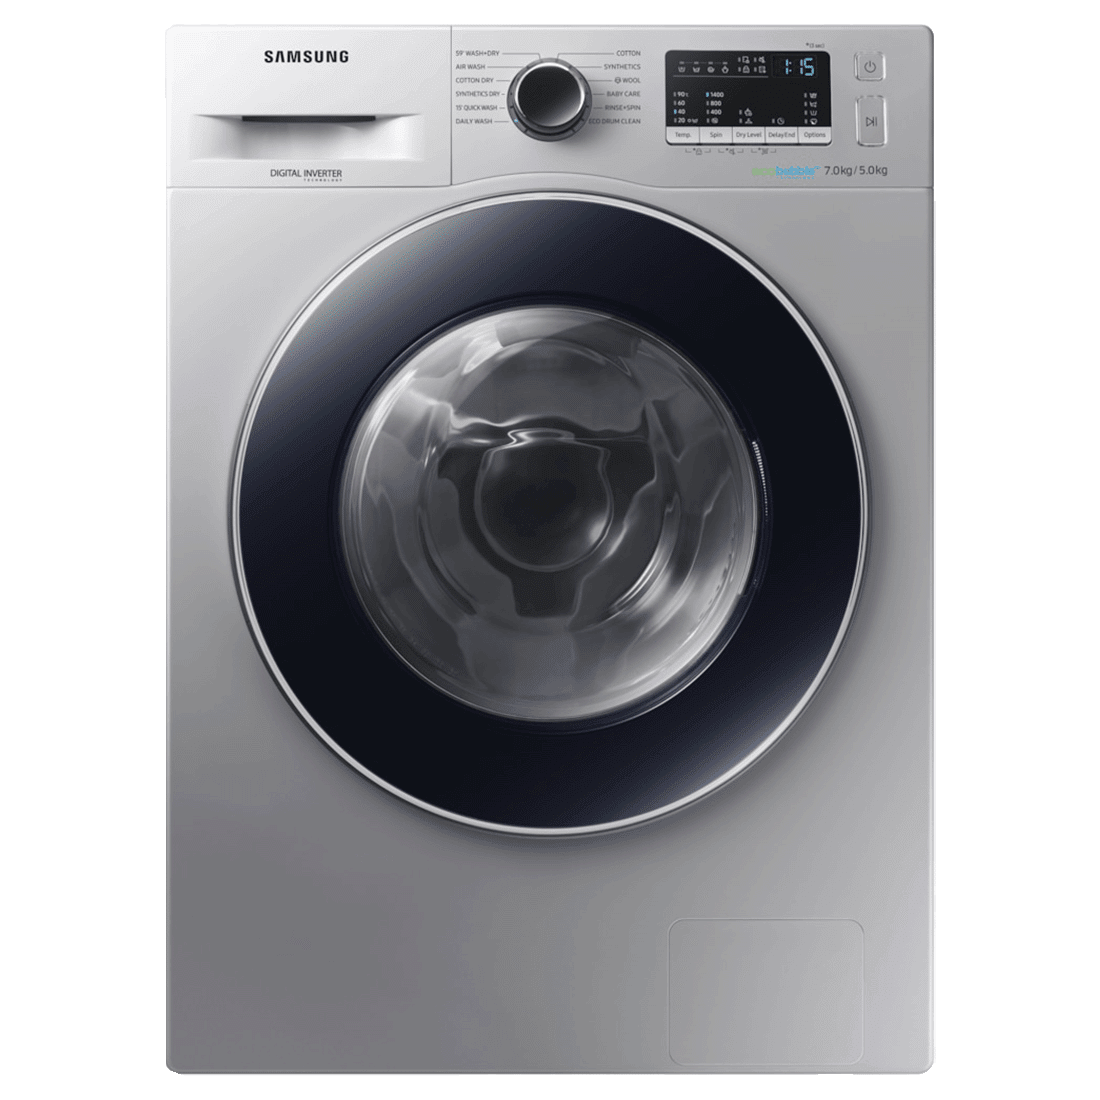 Samsung 7 kg/5 kg Fully Automatic Front Load Washer Dryer Combo (Hygiene Steam, WD70M4443JS/TL, Silver)